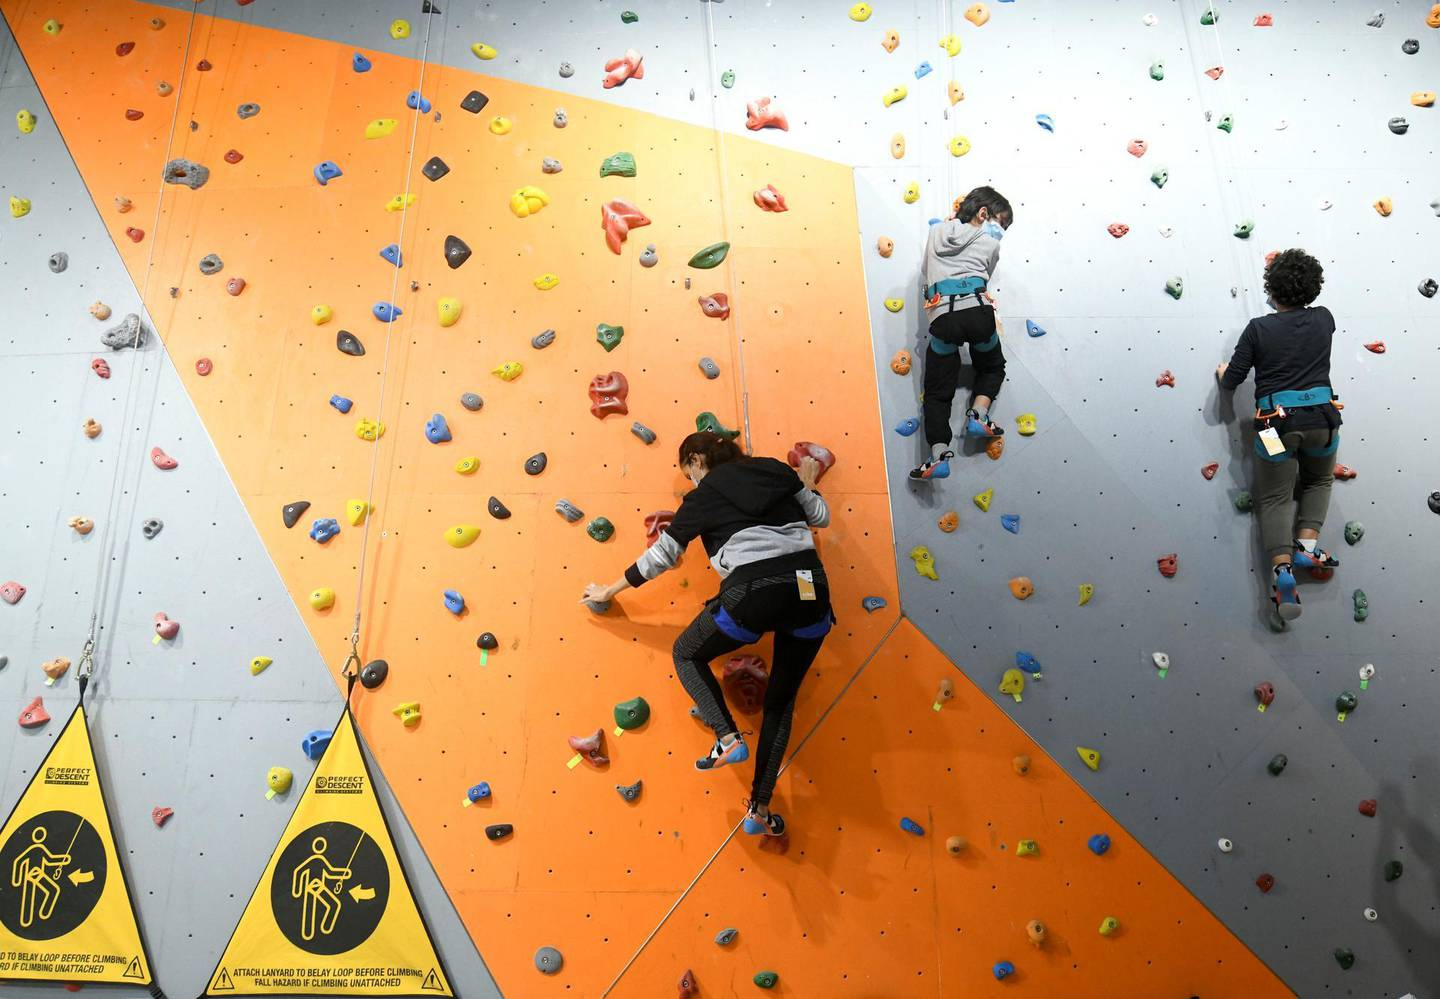 Abu Dhabi, United Arab Emirates - The family scales the indoor climbing walls together at CLYMB, Yas Island. Khushnum Bhandari for The National